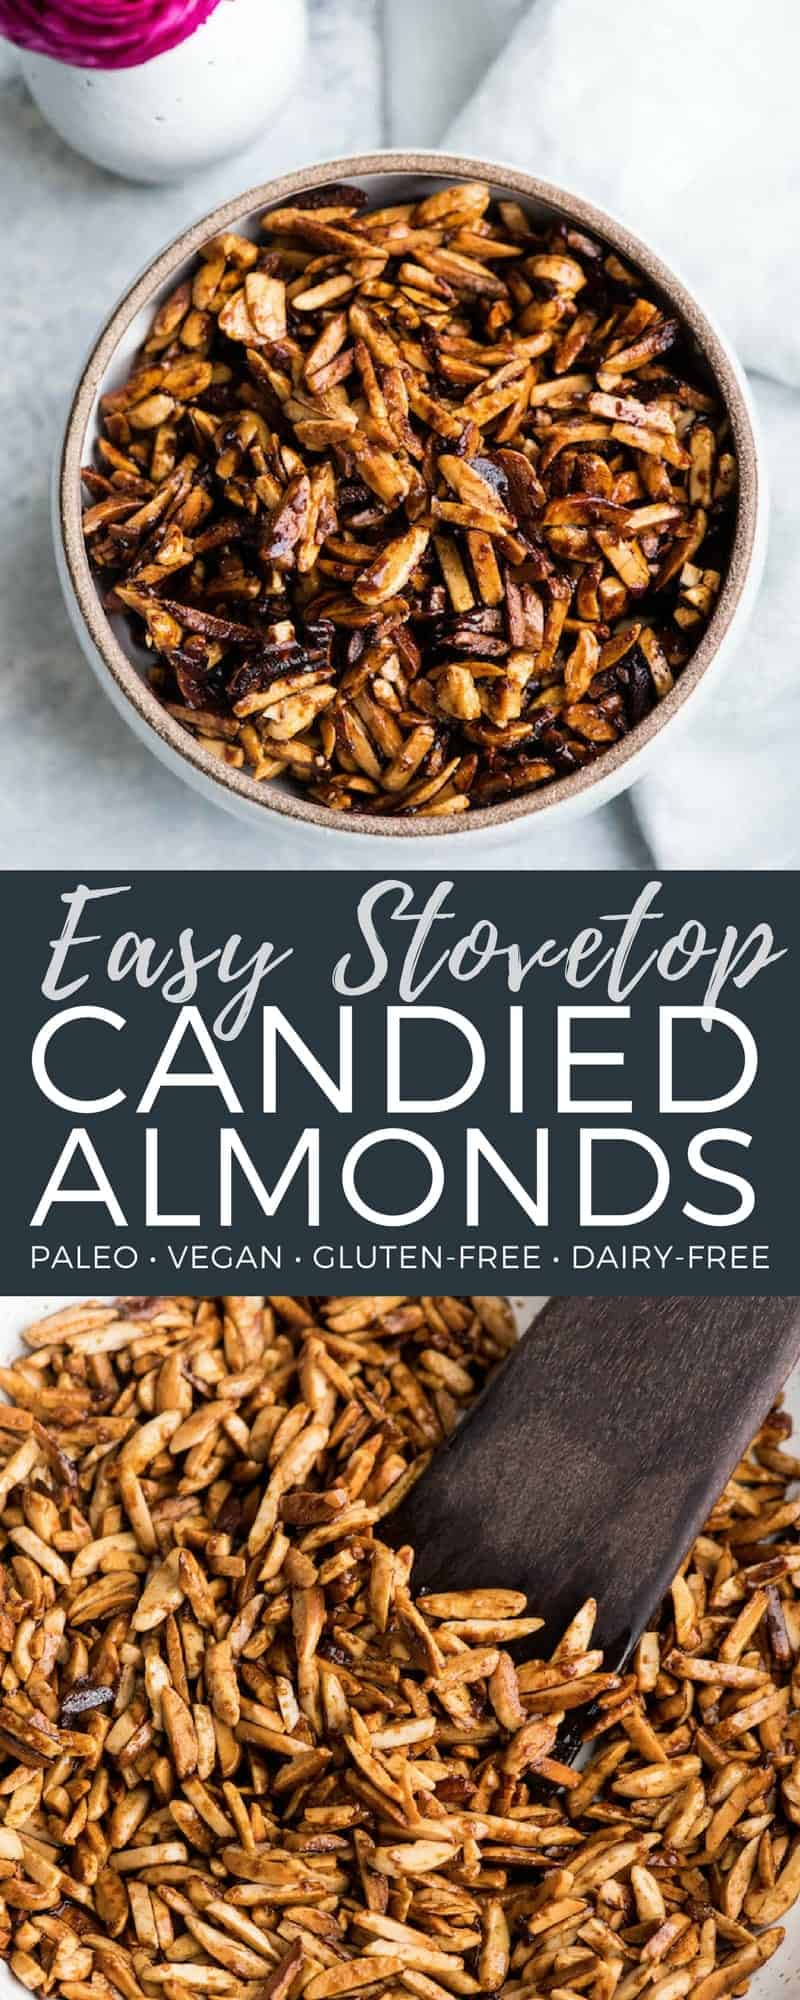 These Easy Candied Almonds only contain 5 ingredients and are made on the stovetop in 15 minutes flat! They're the perfect salad topper or snack! Vegan, gluten-free, dairy-free & paleo-friendly! #candiednuts #almonds #candied #paleo #vegan #glutenfree #dairyfree #refinedsugarfree #stovetop #easy